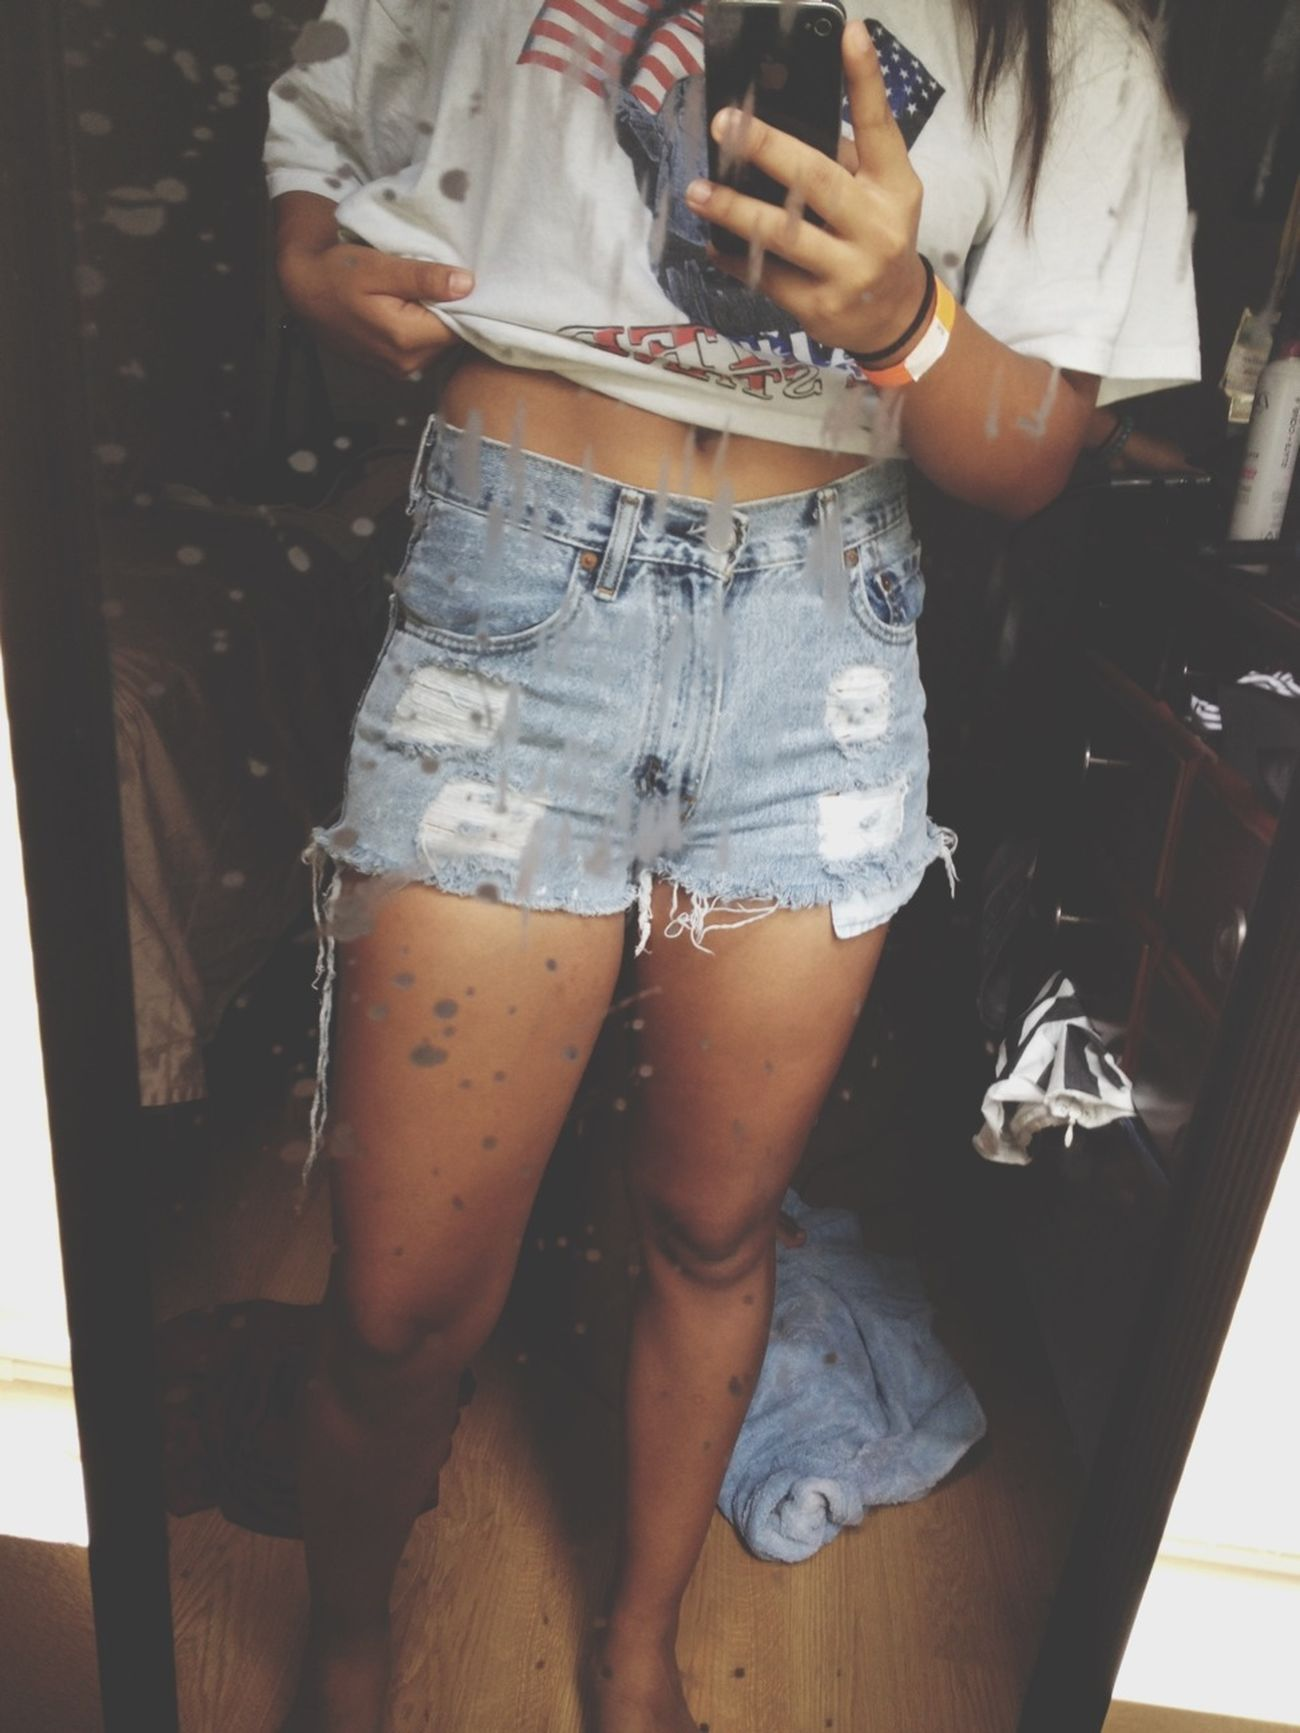 Ugly mirror love these shorts tho